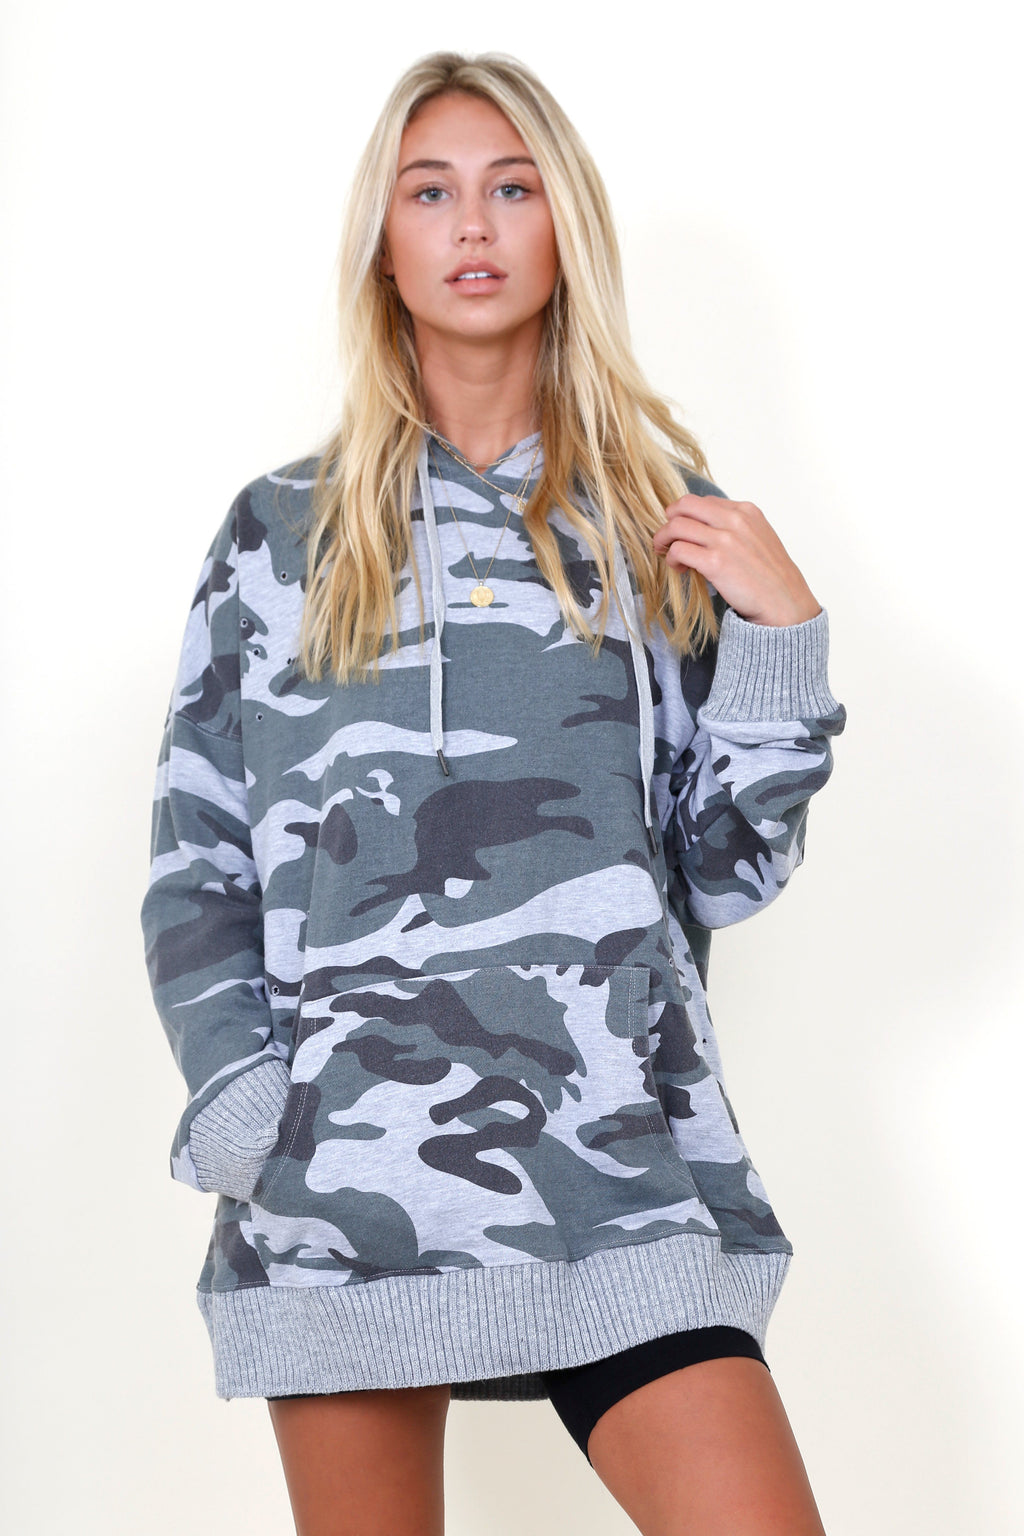 Camo Matter What Hoodie